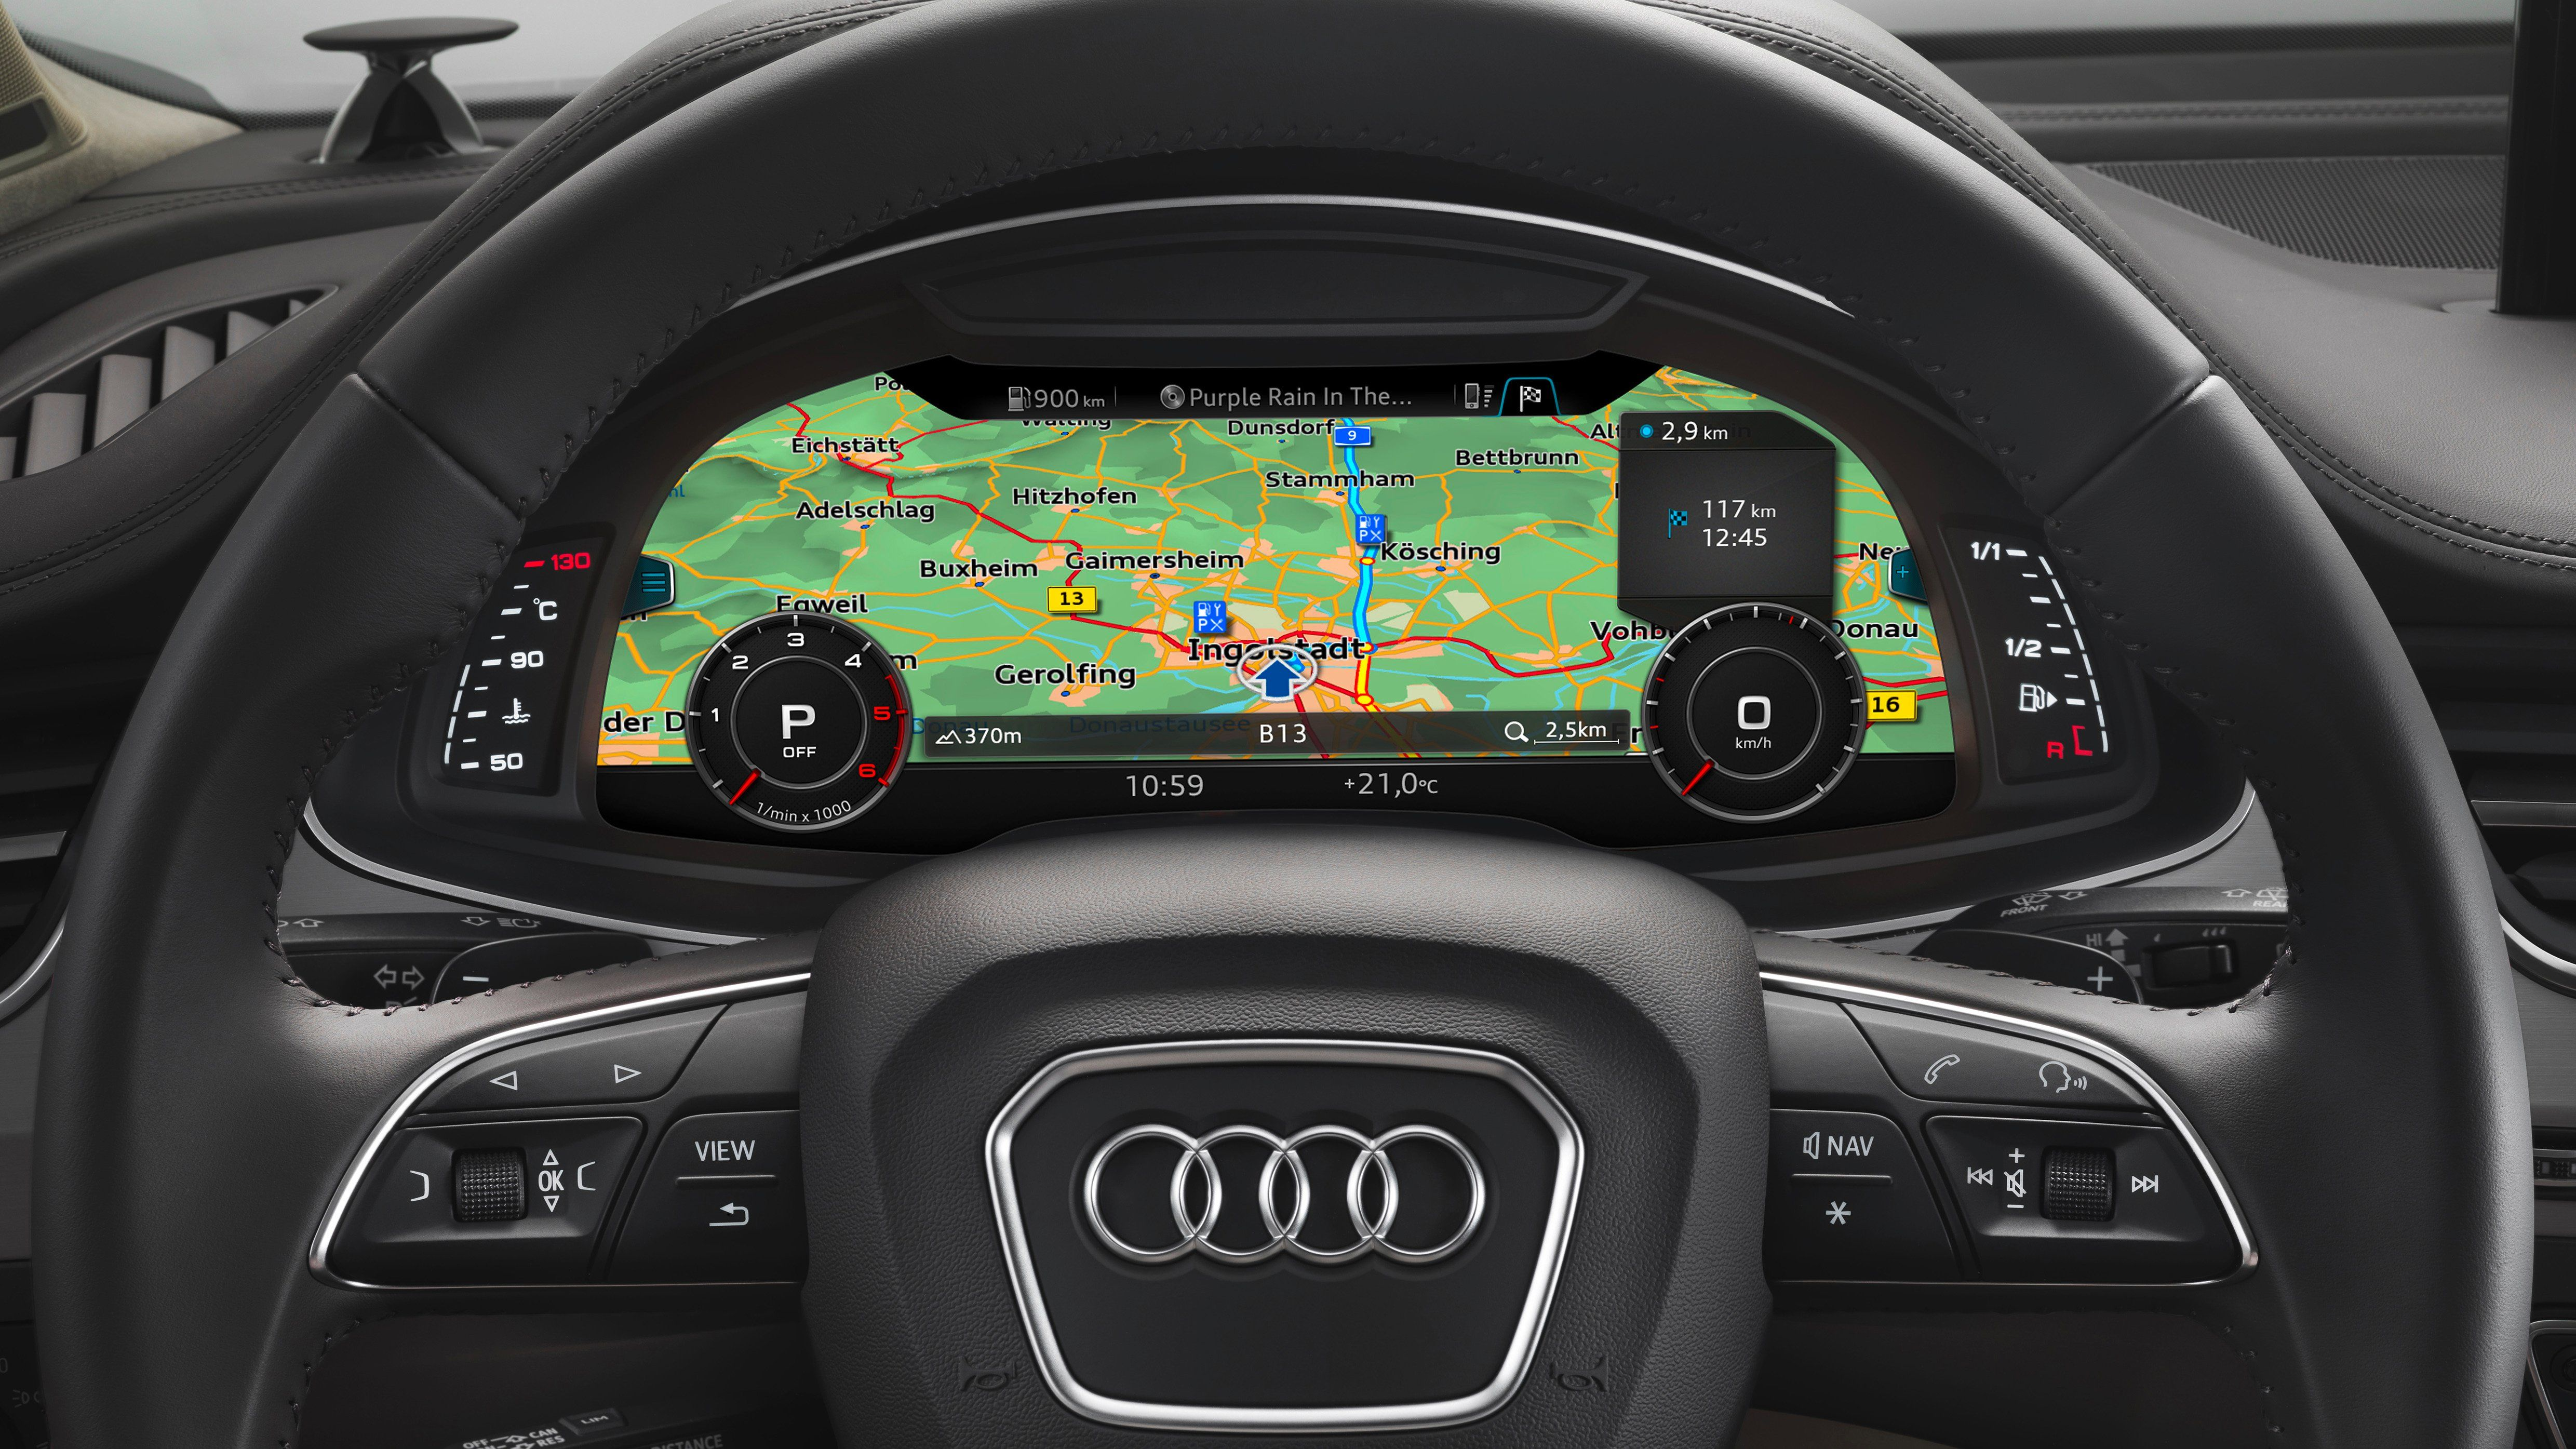 """••AUDI Q7•• 2016 cockpit - at NAIAS (Detroit NA  International Auto Show) 2015-01-16: """"Best Designed Interior"""" EyesOn Design Awards incl. """"Innovative Use of Color + Graphics + Material"""" • picture is 4960×2790! pixels ; ) • full-size premium SUV • more room for: head / shoulder / leg • 2nd gen modular infotainment platform MMI w/ large touchpad w/ AppleCarPlay + Audi tablet for back seats + 3D Bang & Olufson sound w/ Bose Surround • quattro all-wheel-drive etc. • 3L V6 TDI/TFSI clean diesel"""